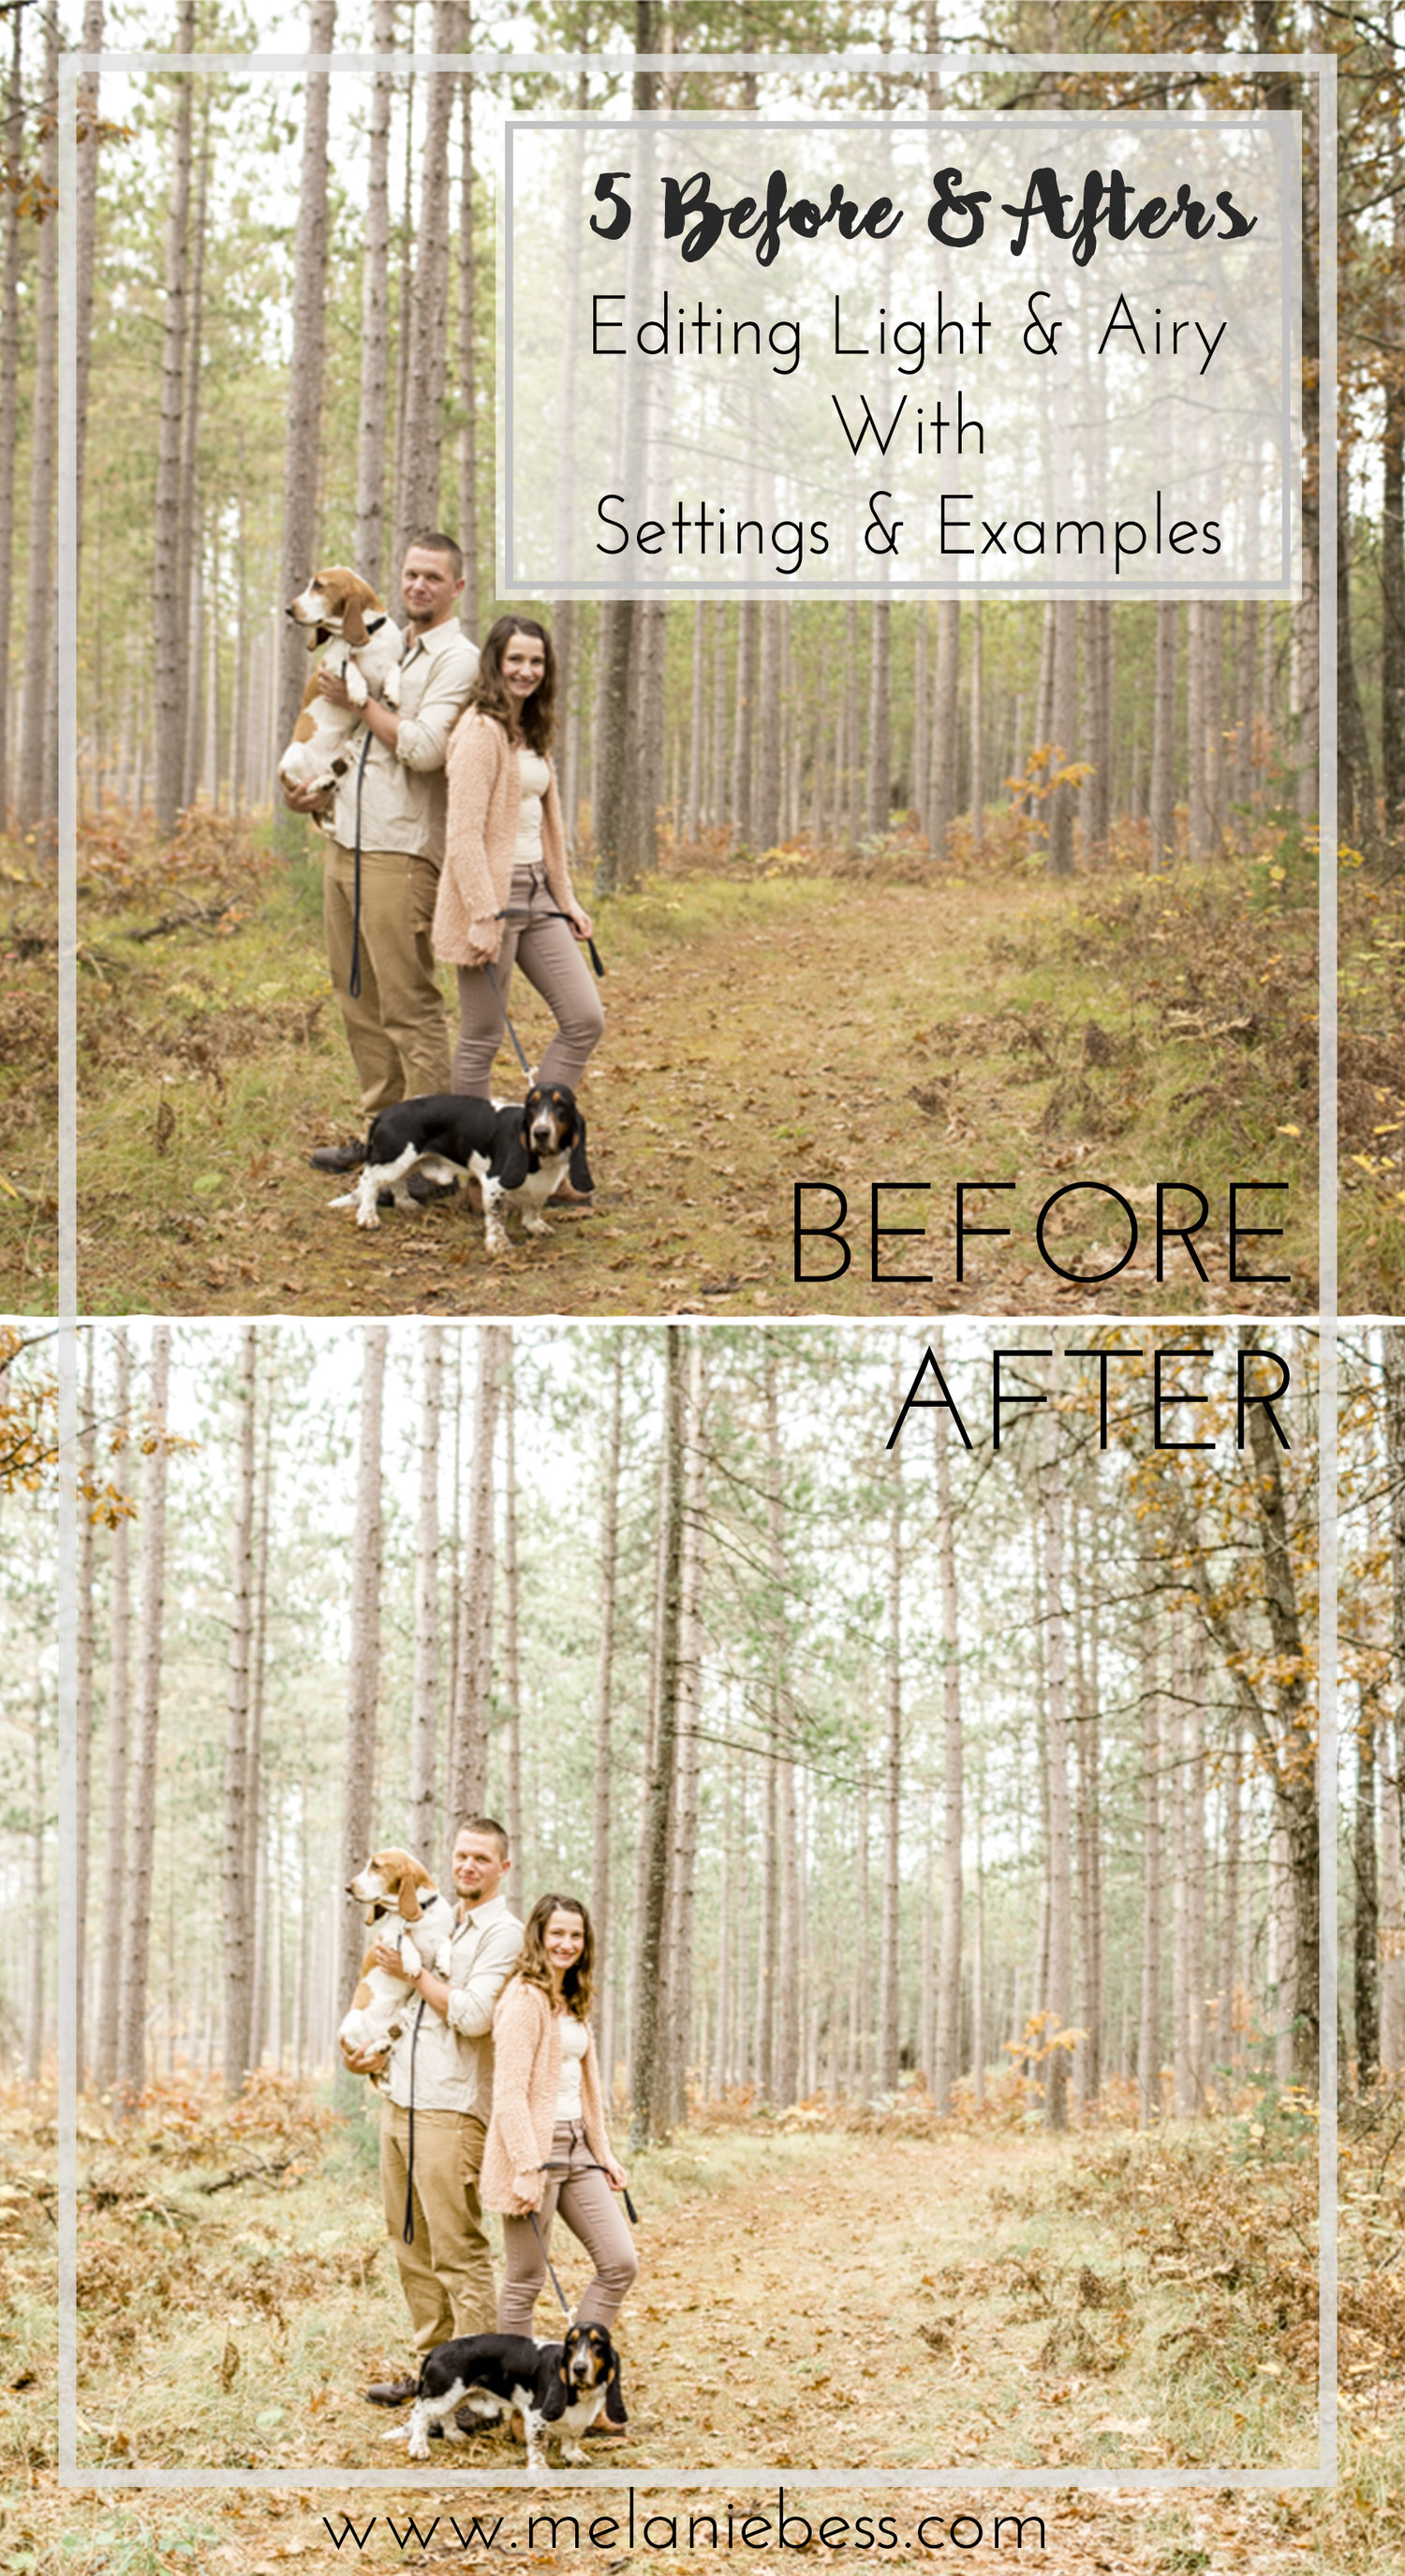 Before & After - Light & Airy Images Using Mastin Labs